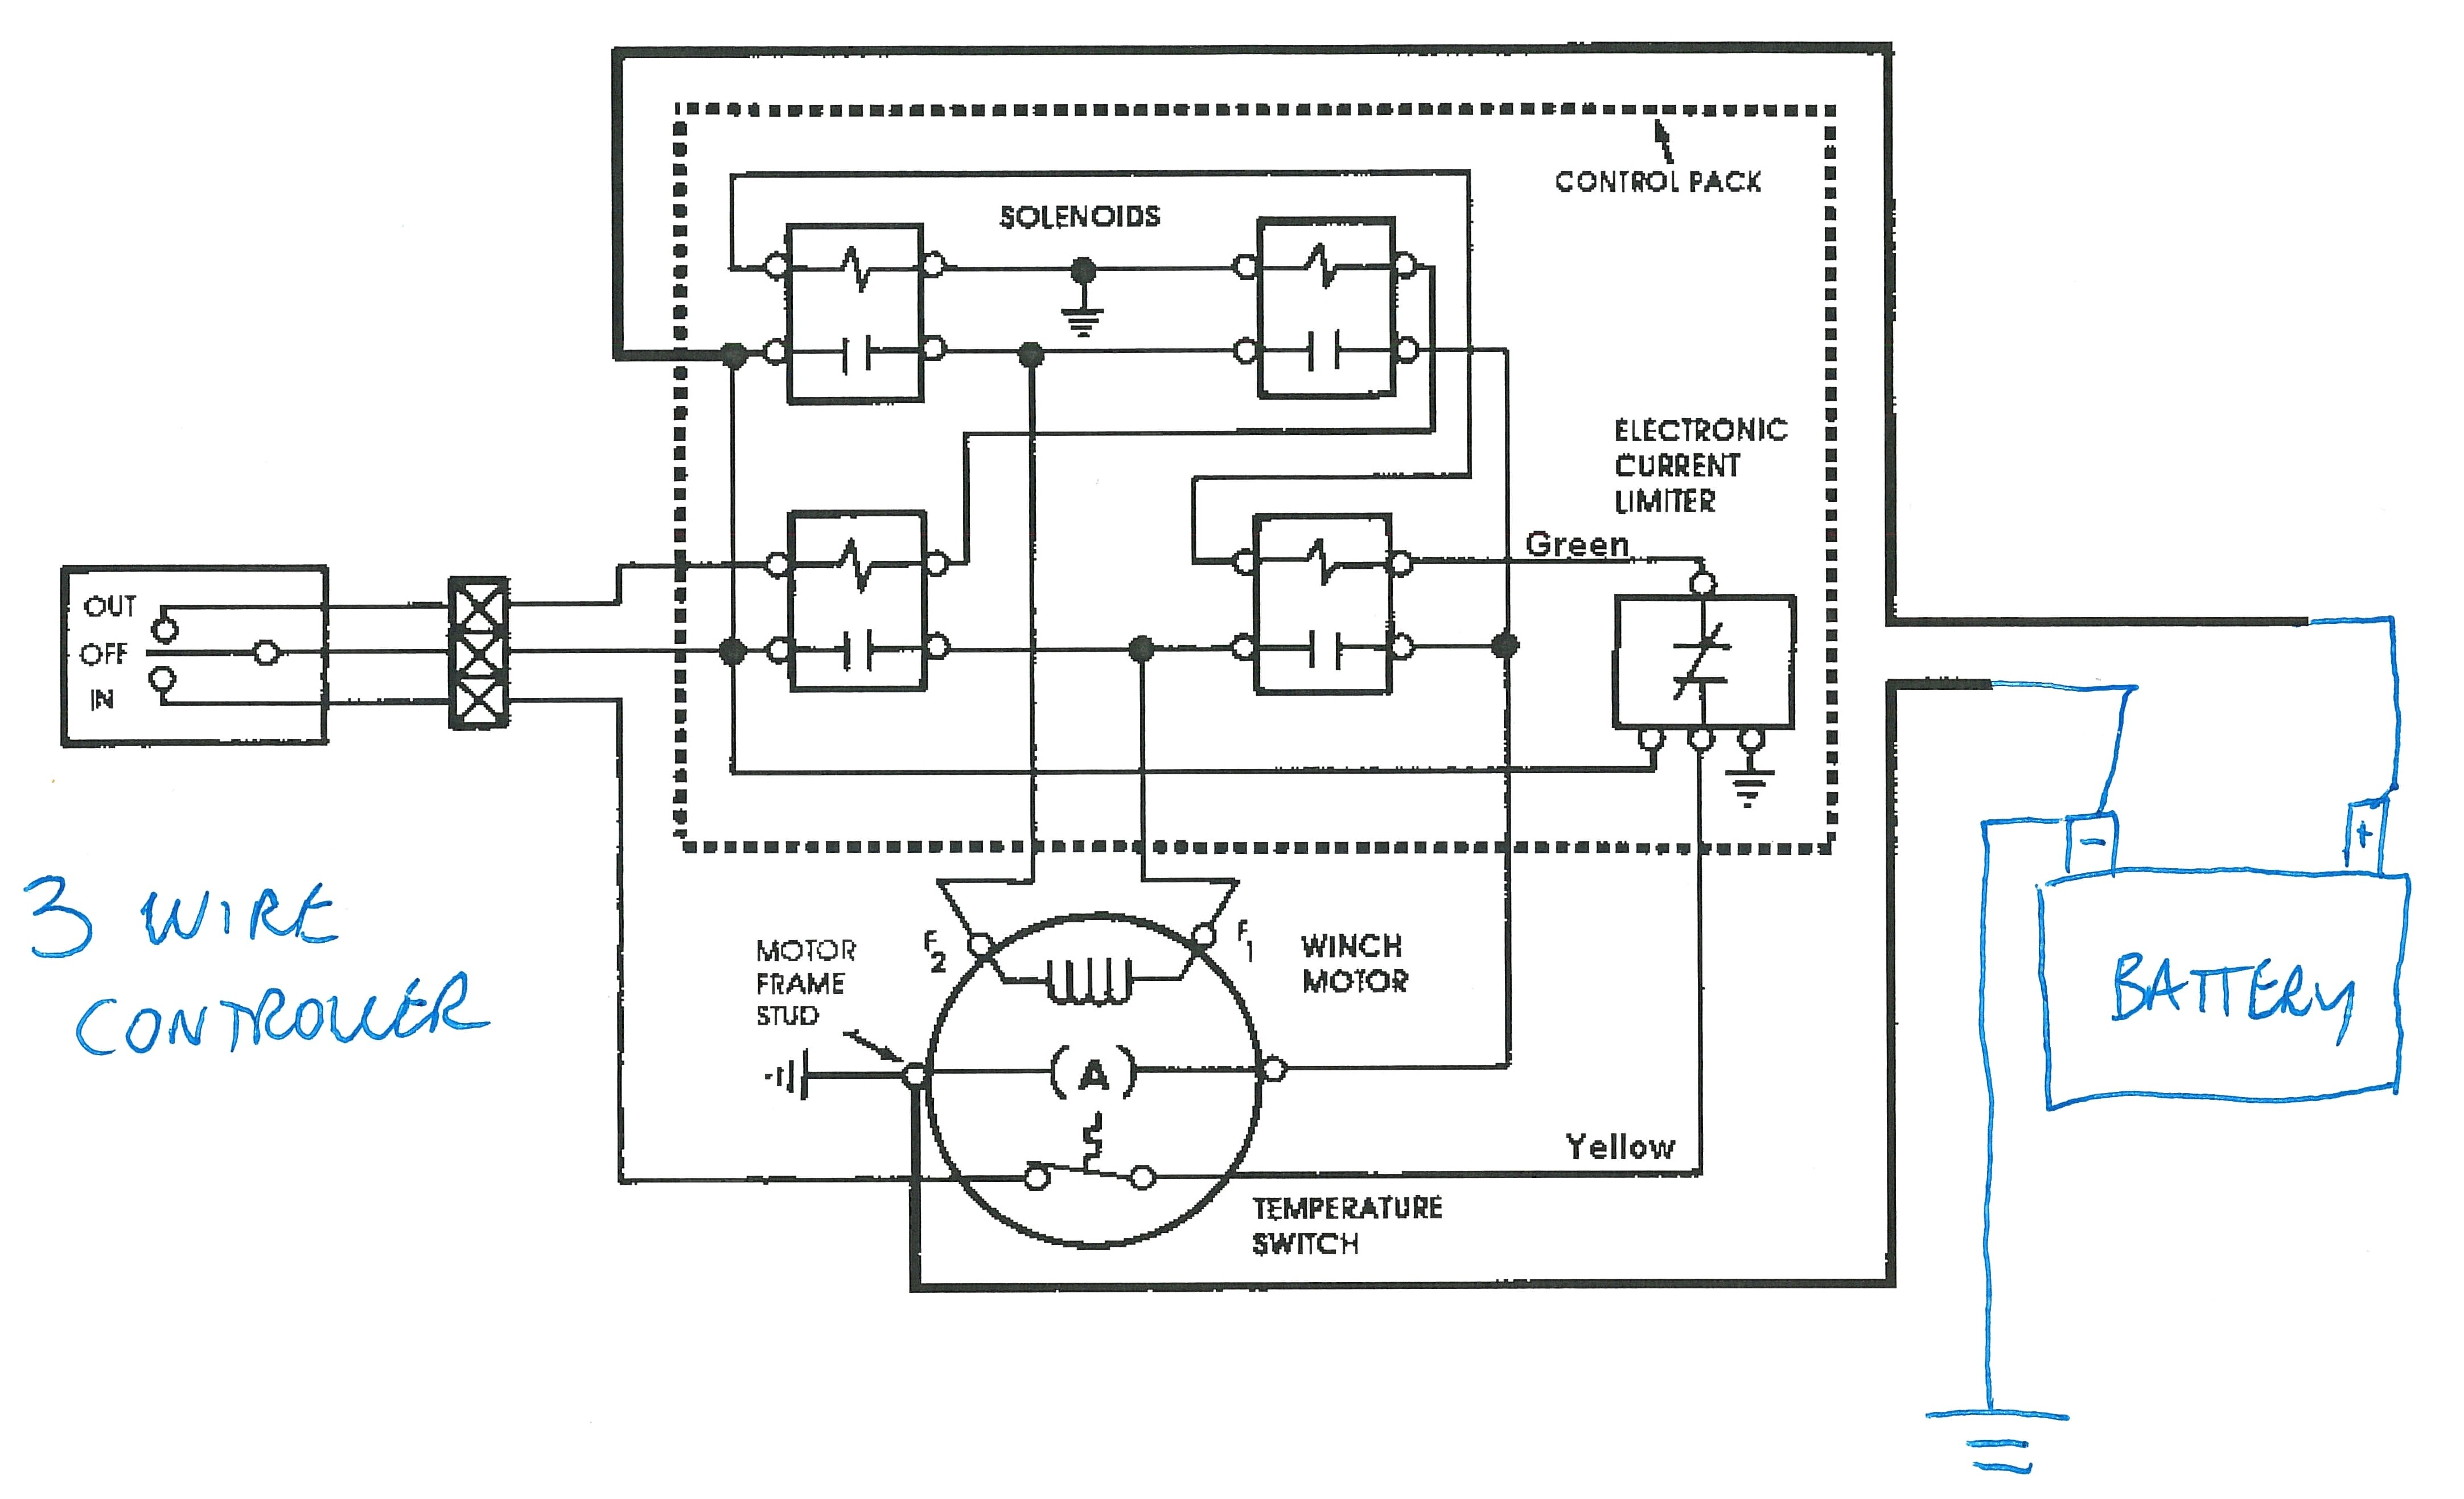 Ac Contactor Wiring Diagram Air Conditioner Schematic